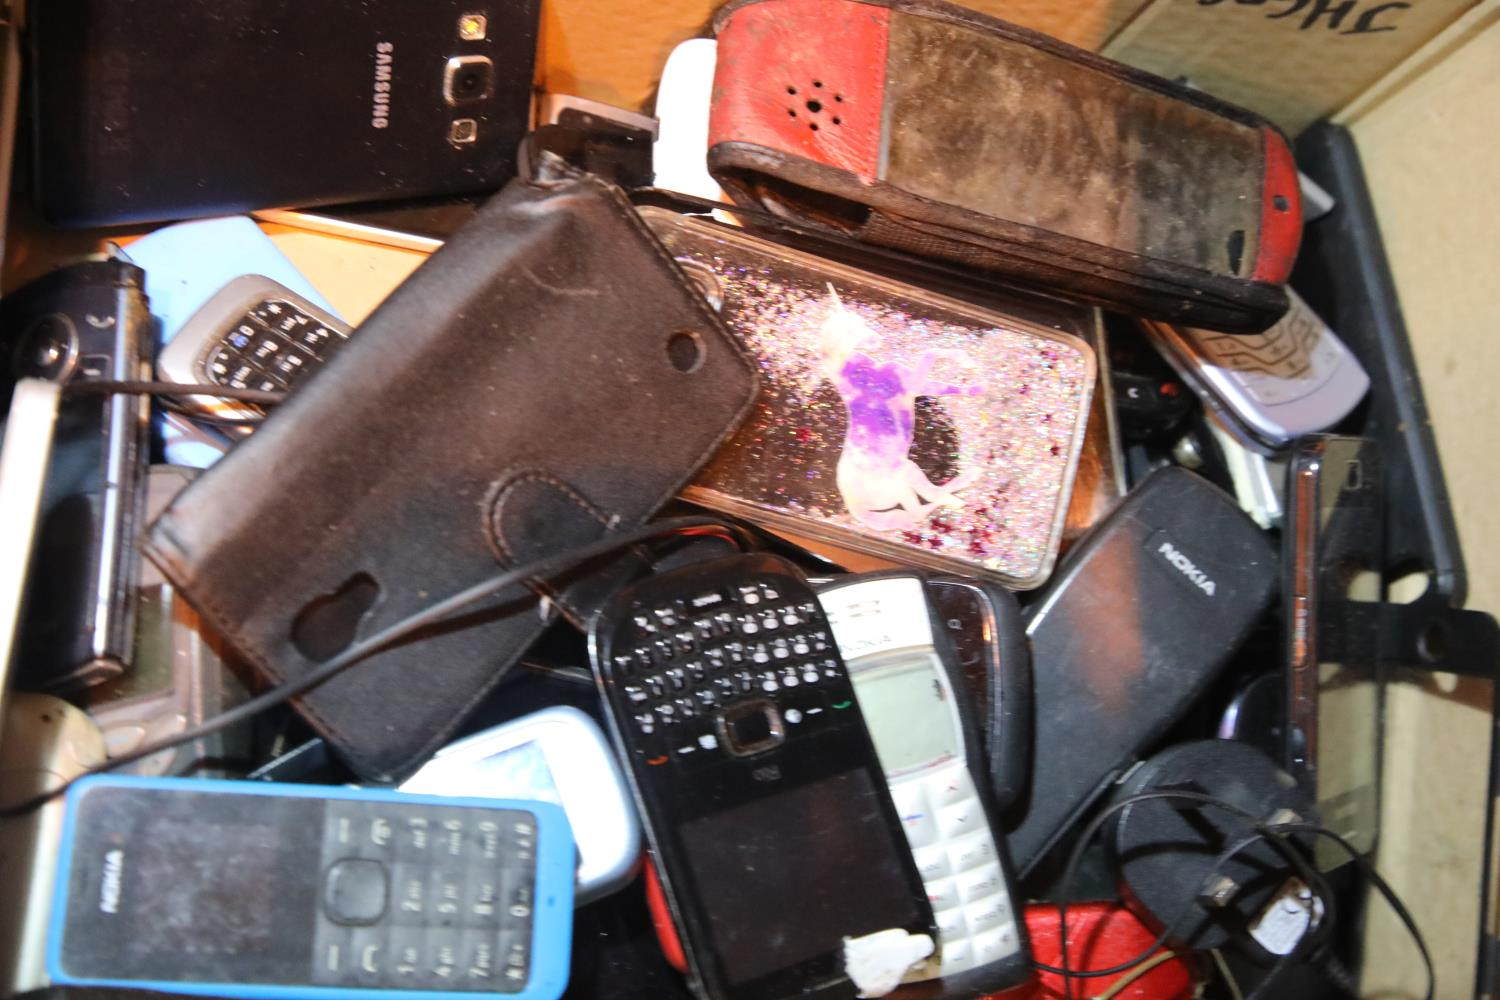 Tray of mixed mobile phones including iPhones and Samsung Blackberry Nokia. Not available for in-